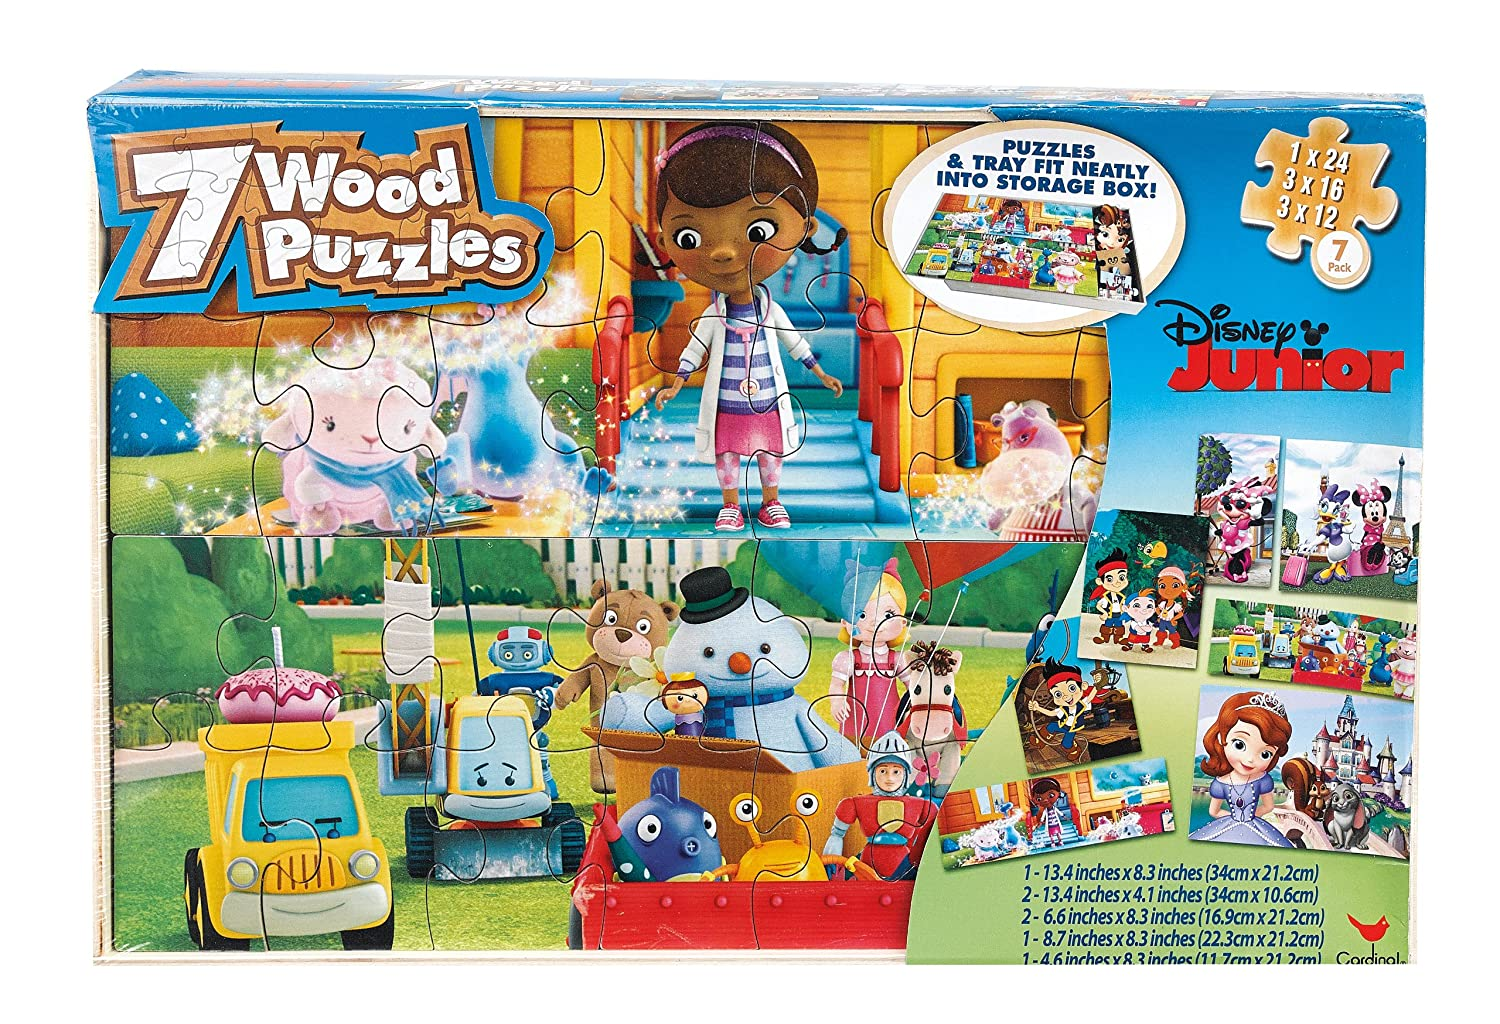 Paw Patrol 7 Wood Puzzles In Wooden Storage Box (styles will vary) 6029350